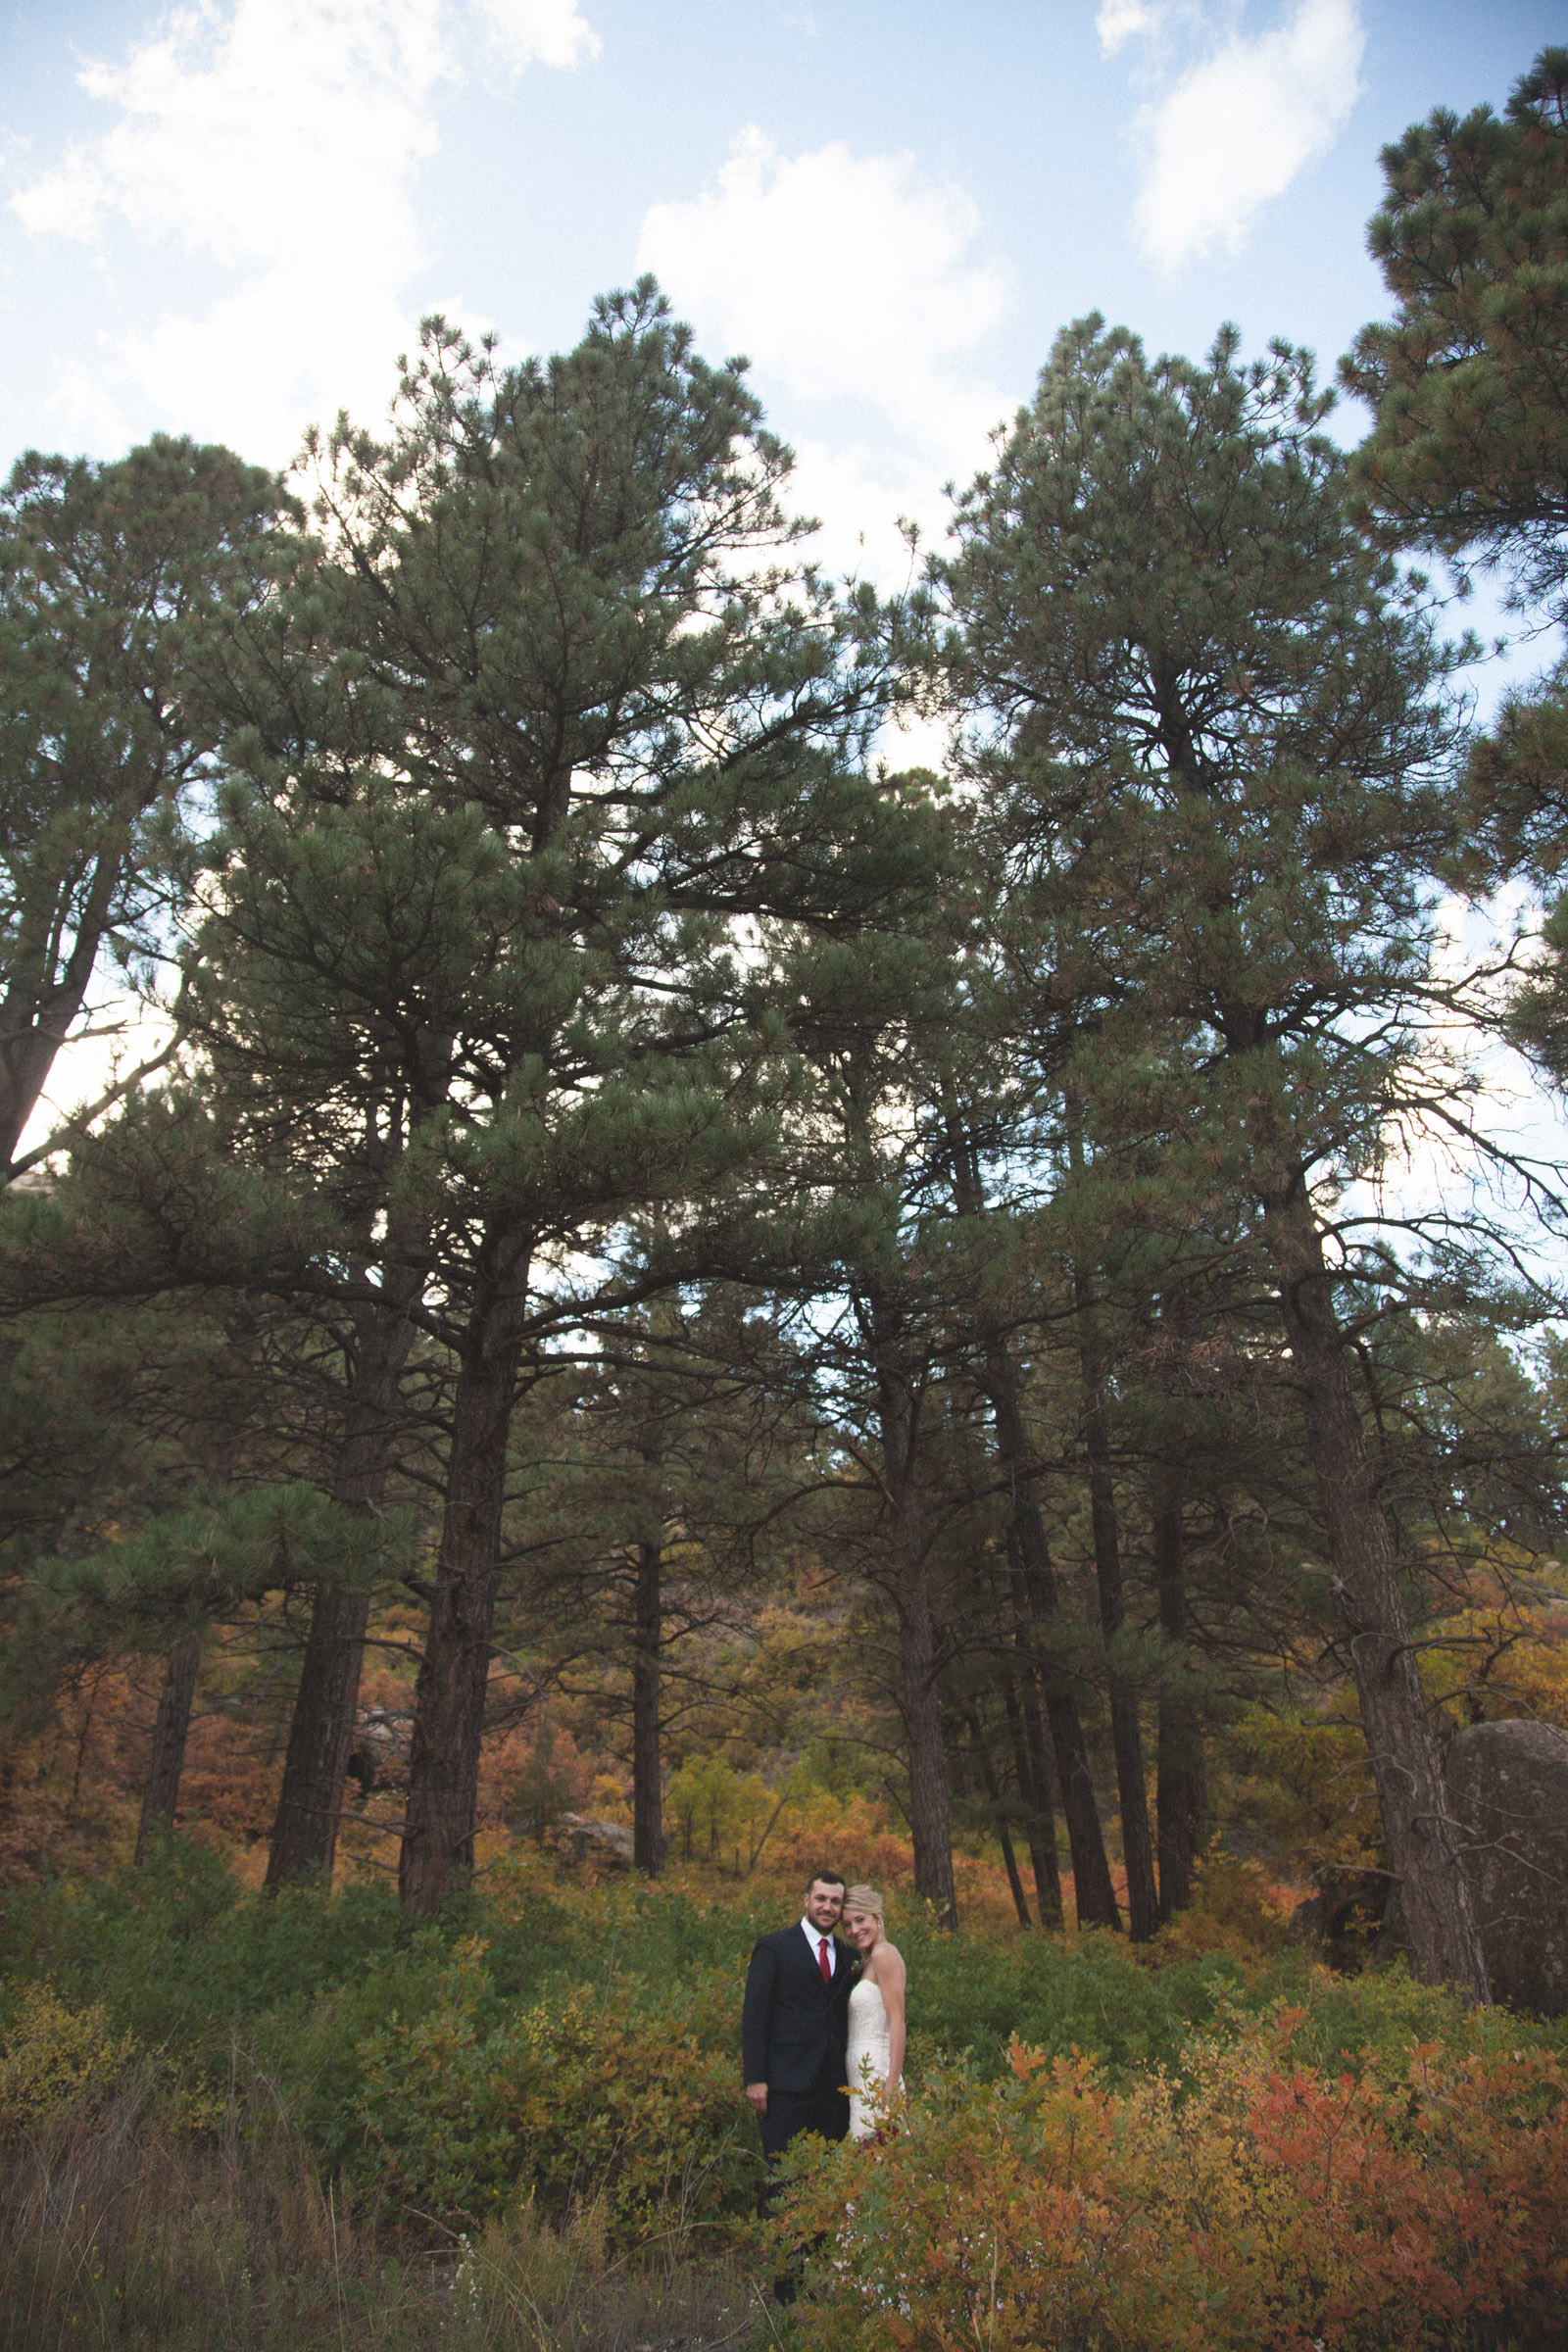 136-beautiful-bride-and-groom-photojournalist-portraits-at-elopement-wedding-in-durango-colorado-forest